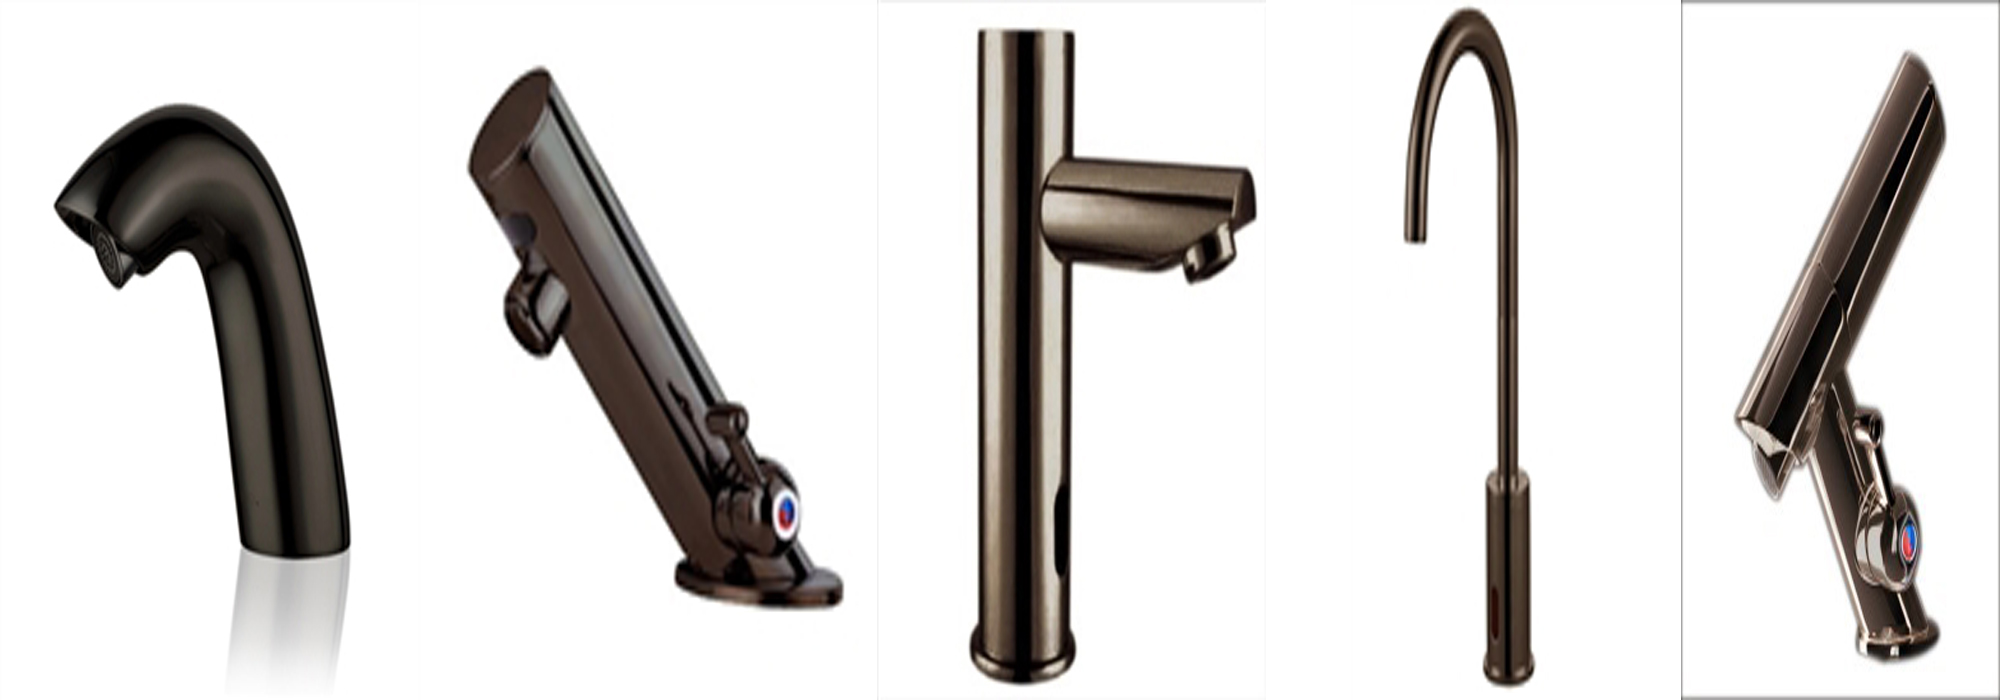 oil-rubbed-bronze-sensor-faucets